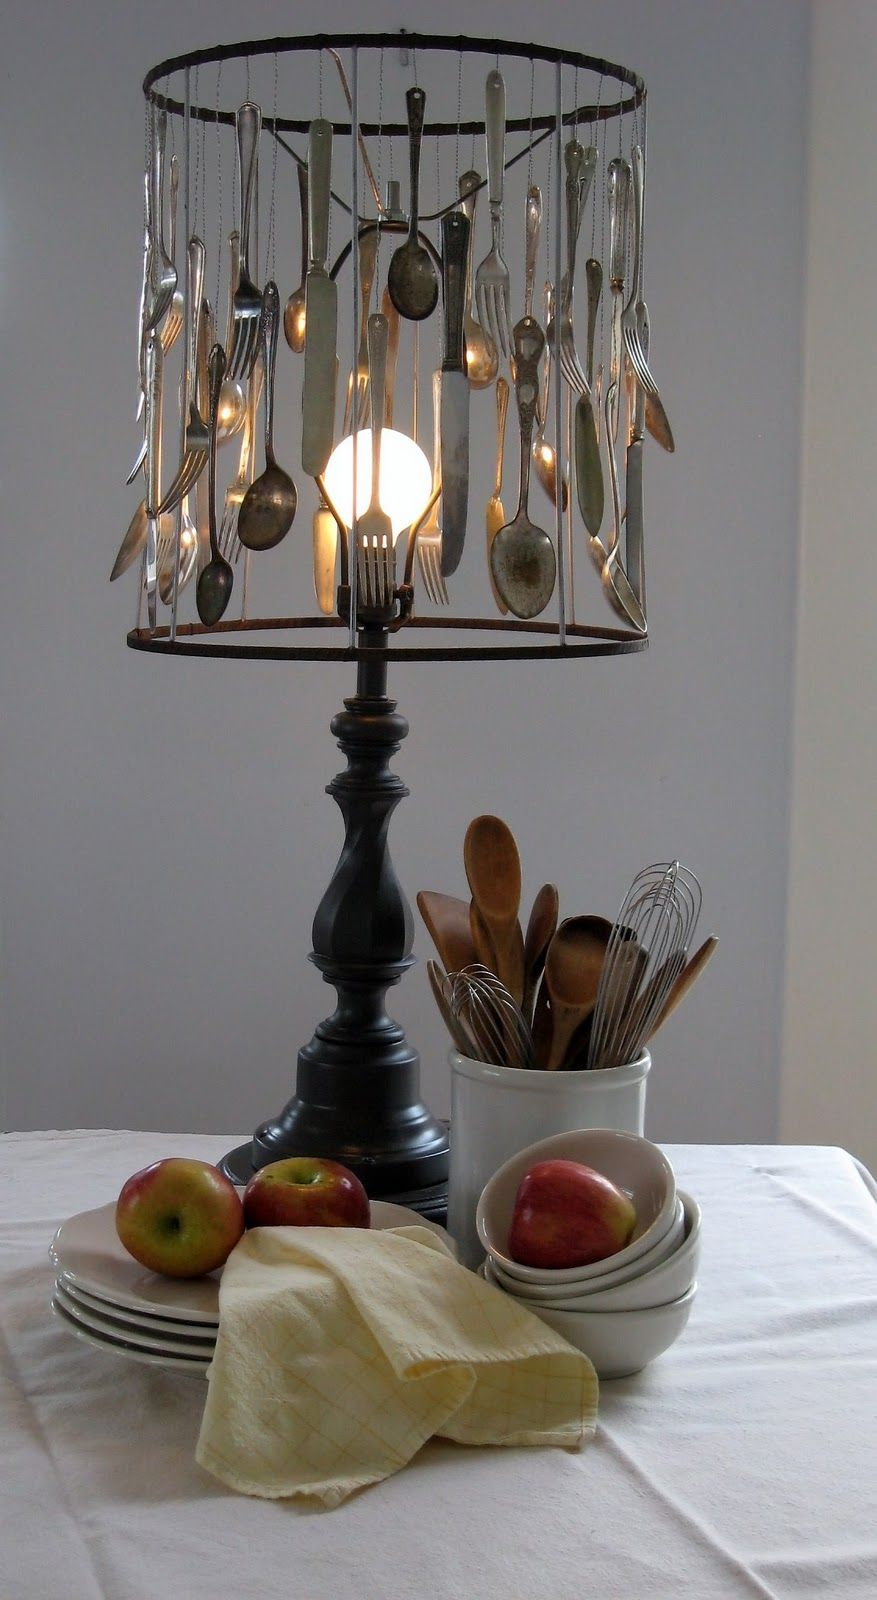 create a rustic look with a silverware lampshade would this work diy silverware lamp another cool idea for old spoons and forks that stopped looking good for a long time now like the idea of stripping the shade from a